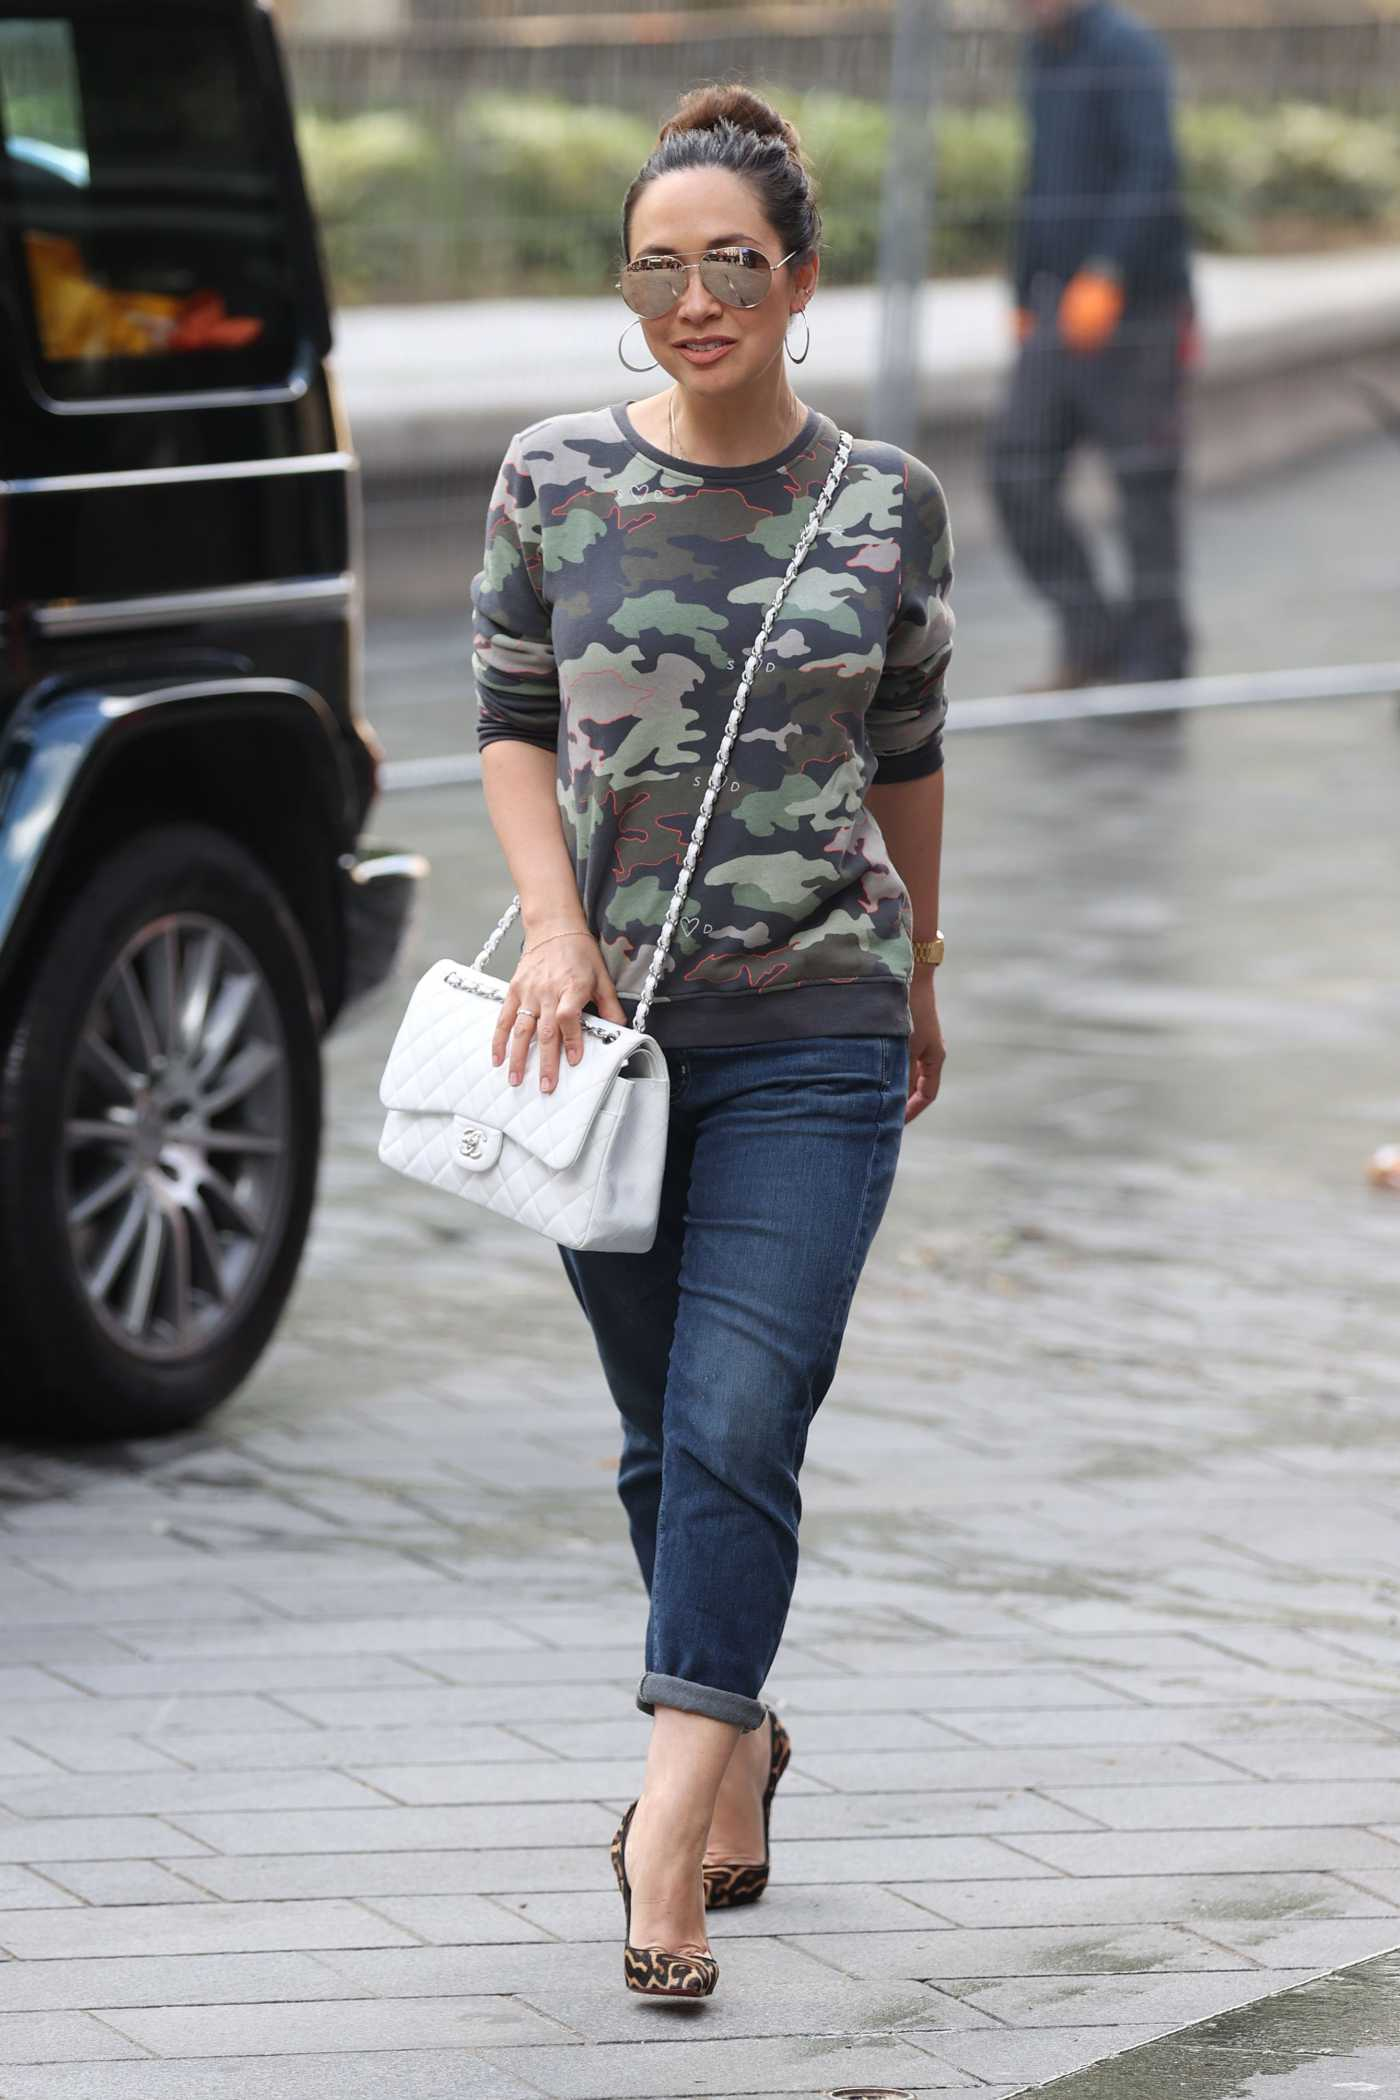 Myleene Klass in a Camo Long Sleeves T-Shirt Arrives at the Smooth Radio in London 05/14/2020